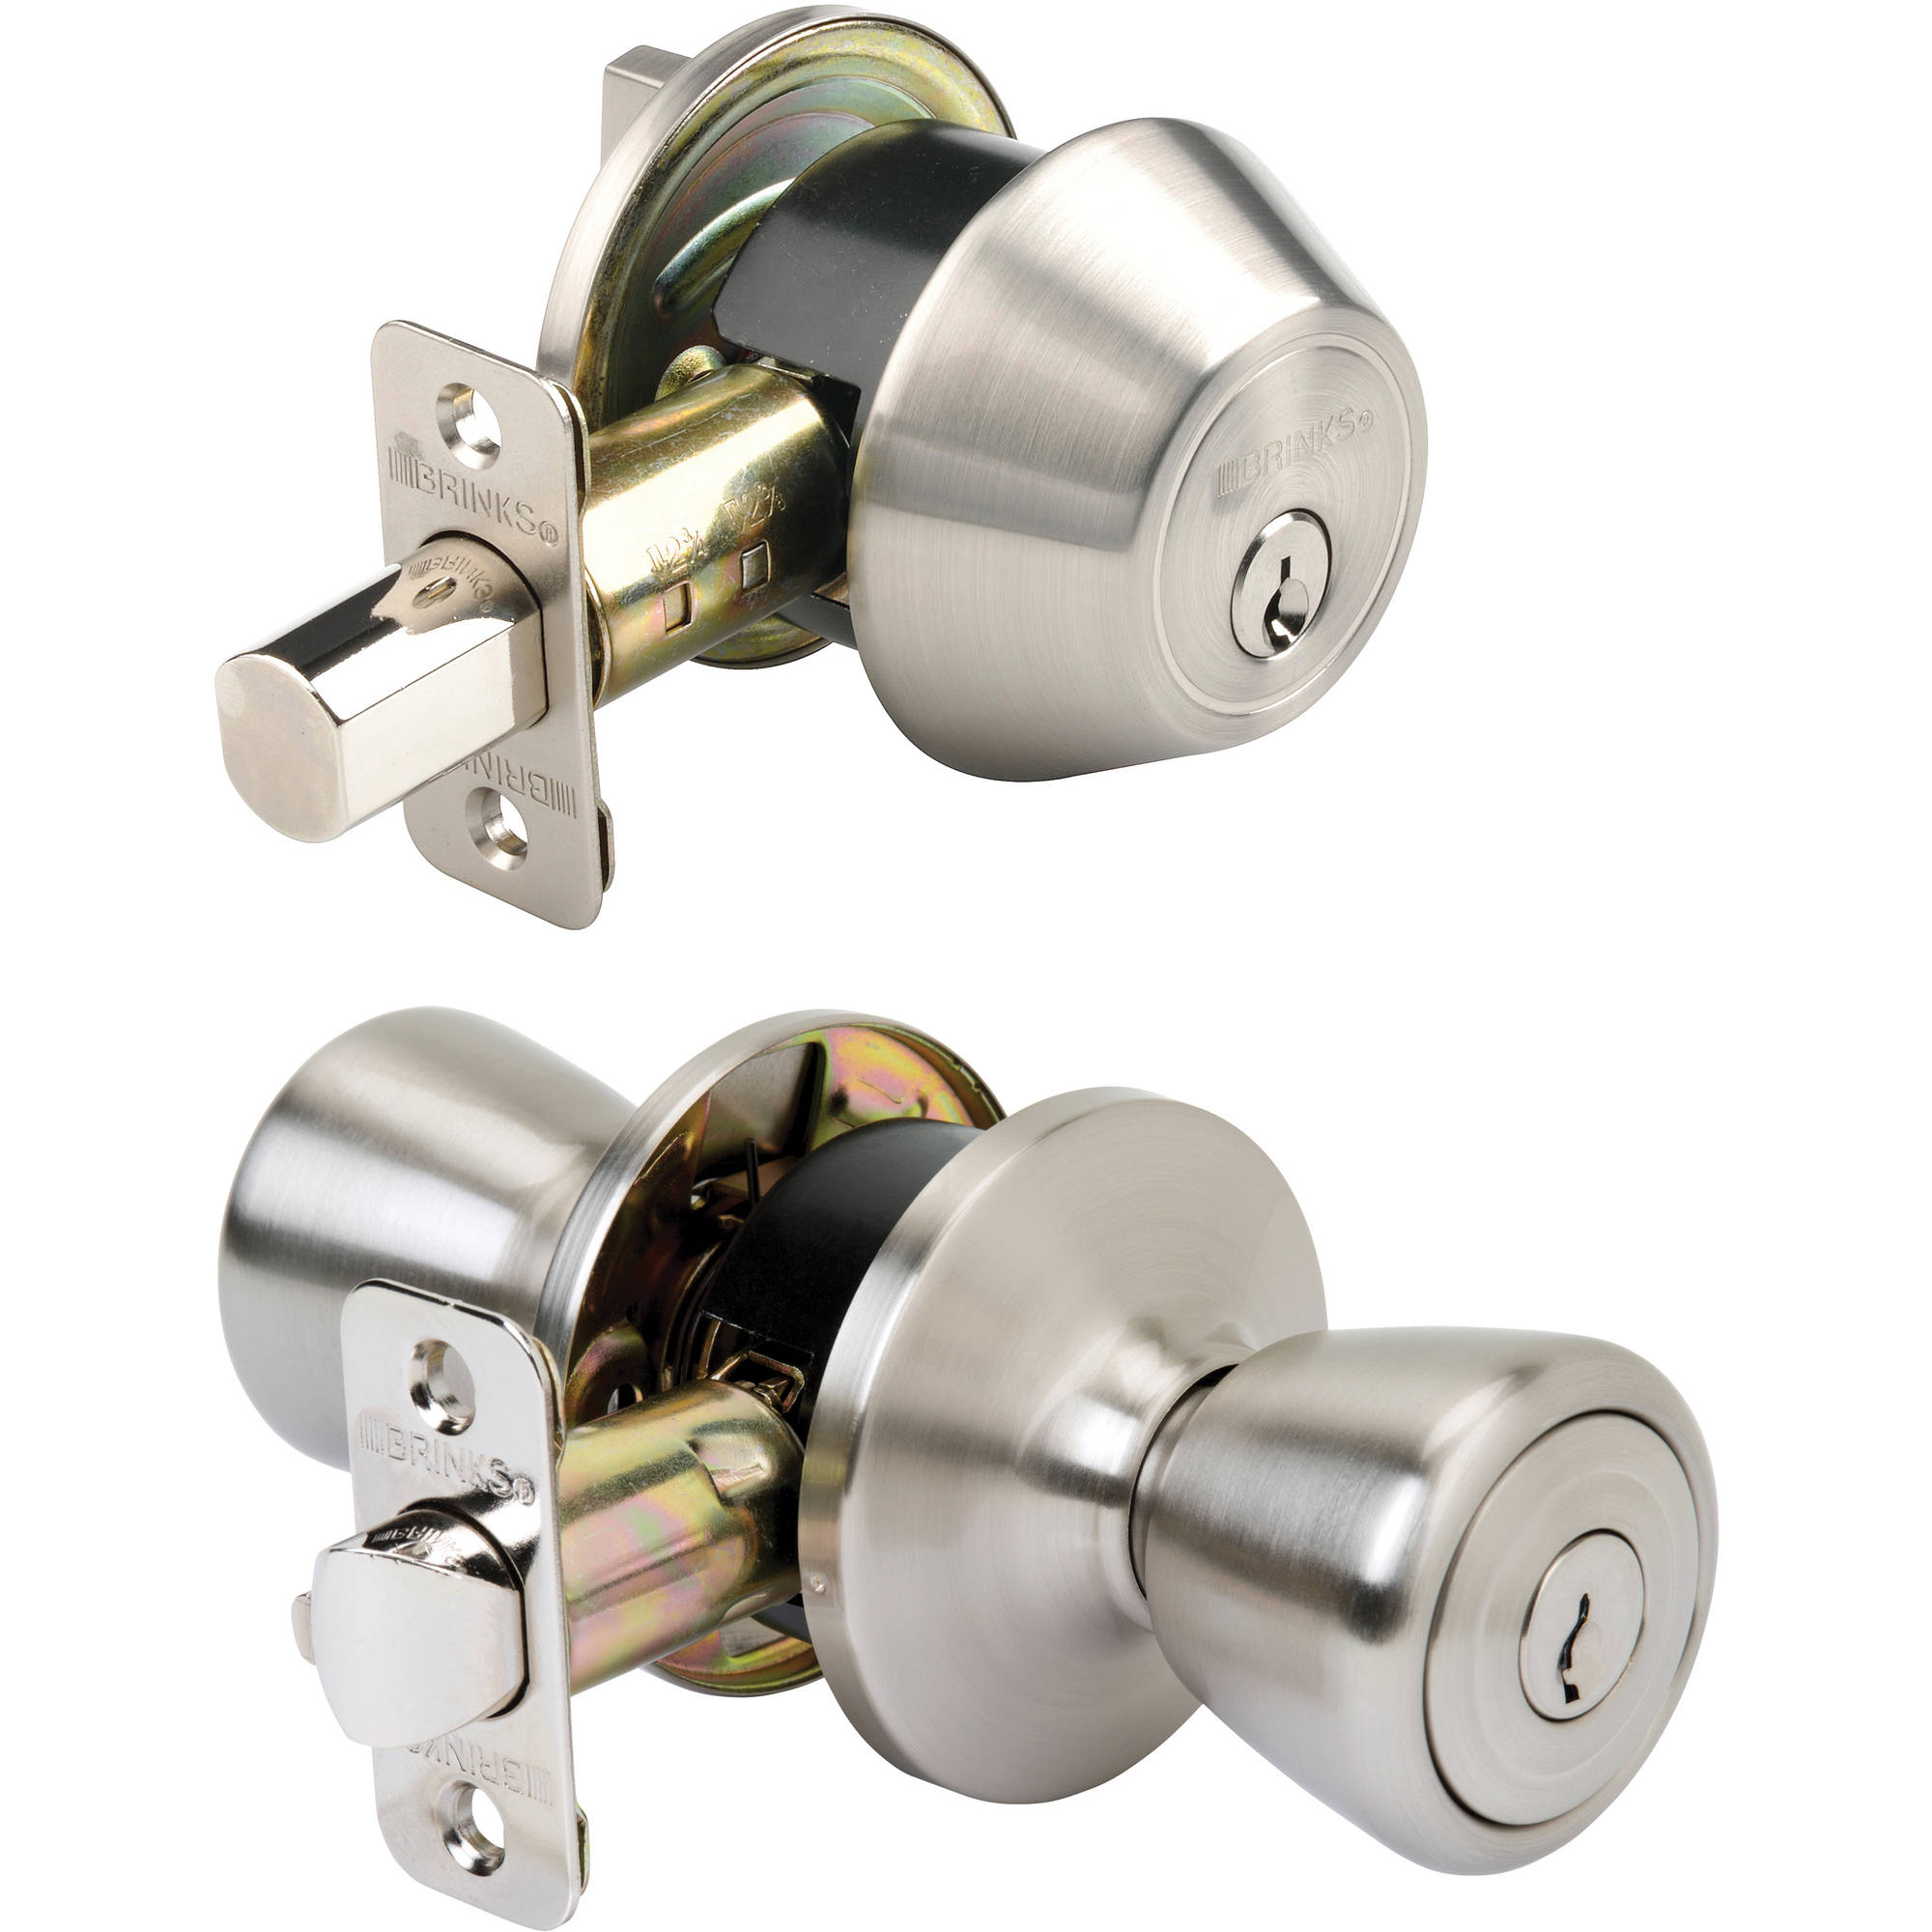 Brinku0027s Tulip Style Keyed Entry Door Knob And Single Deadbolt, Satin Nickel